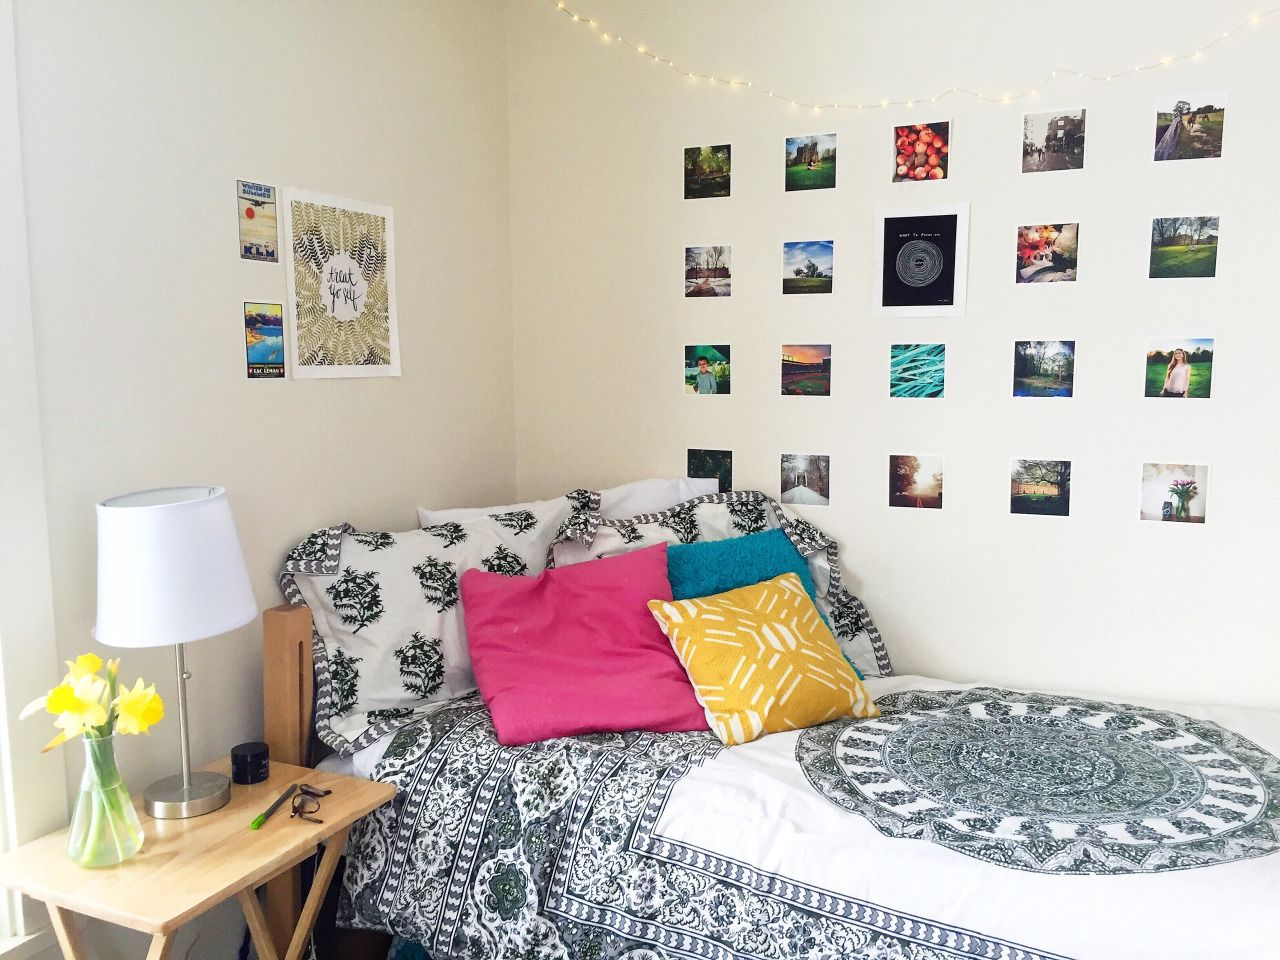 344 Best Dorm Room Images On Pinterest | College Life, Dorm Life And College  Apartments